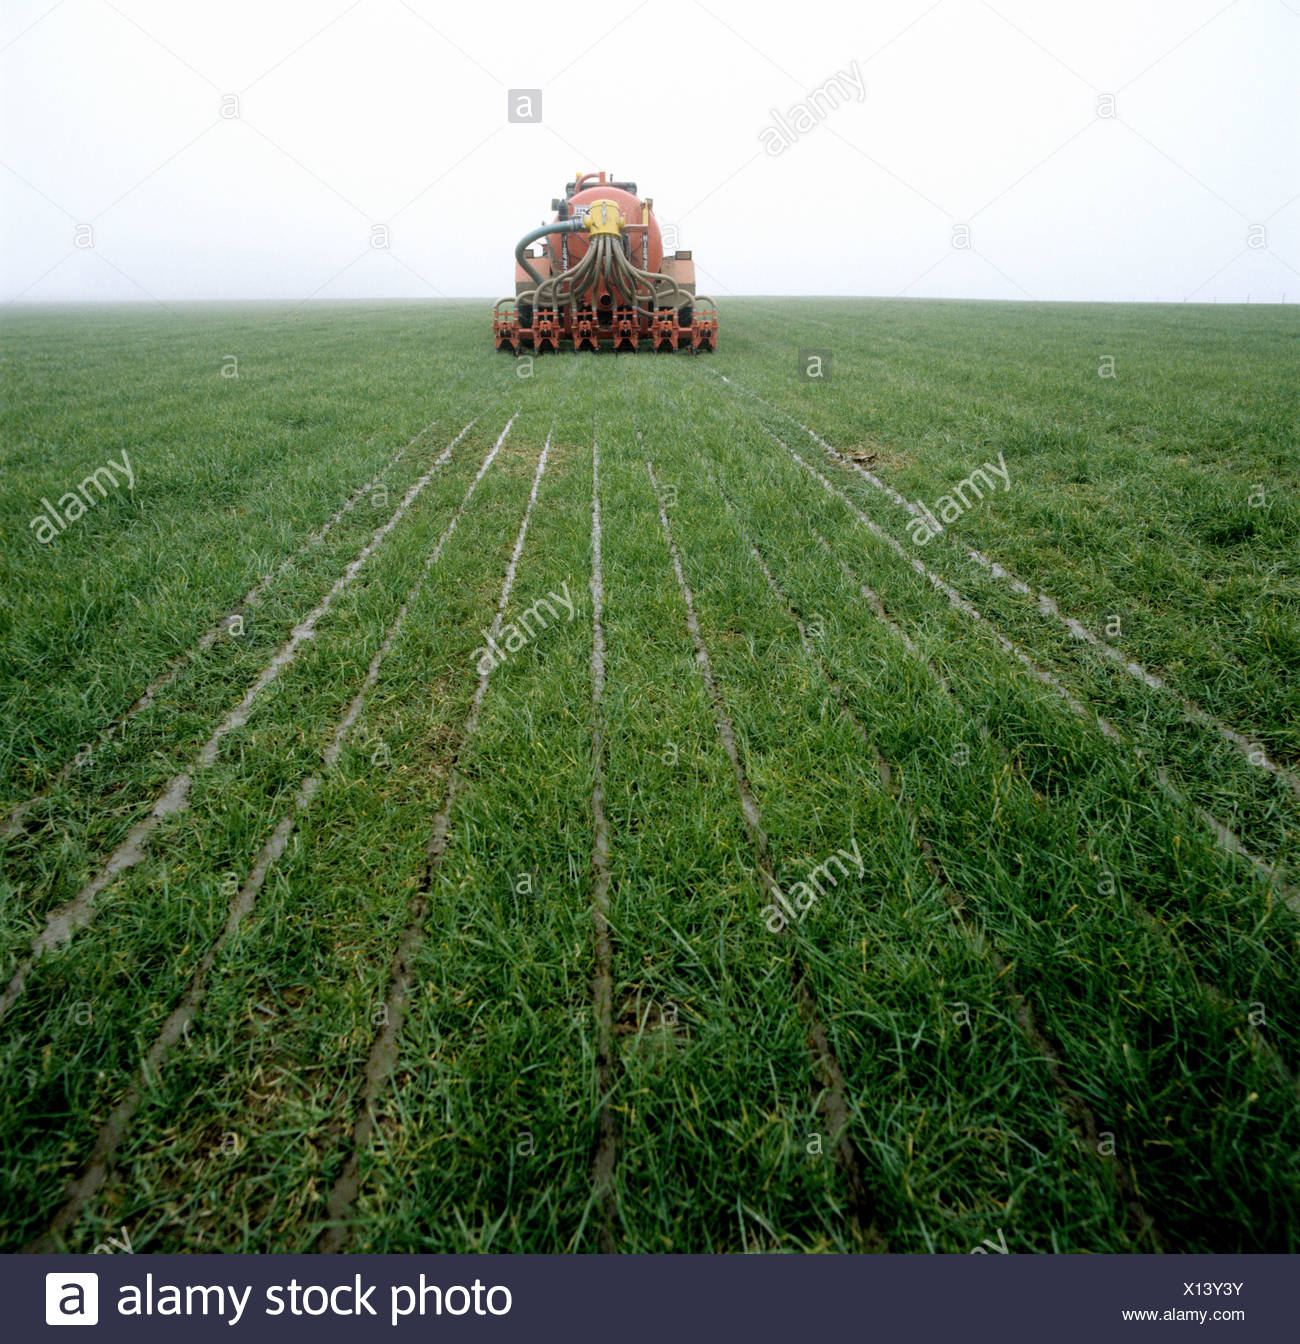 Tractor and Hispec slurry injector injecting slurry into grassland - Stock Image